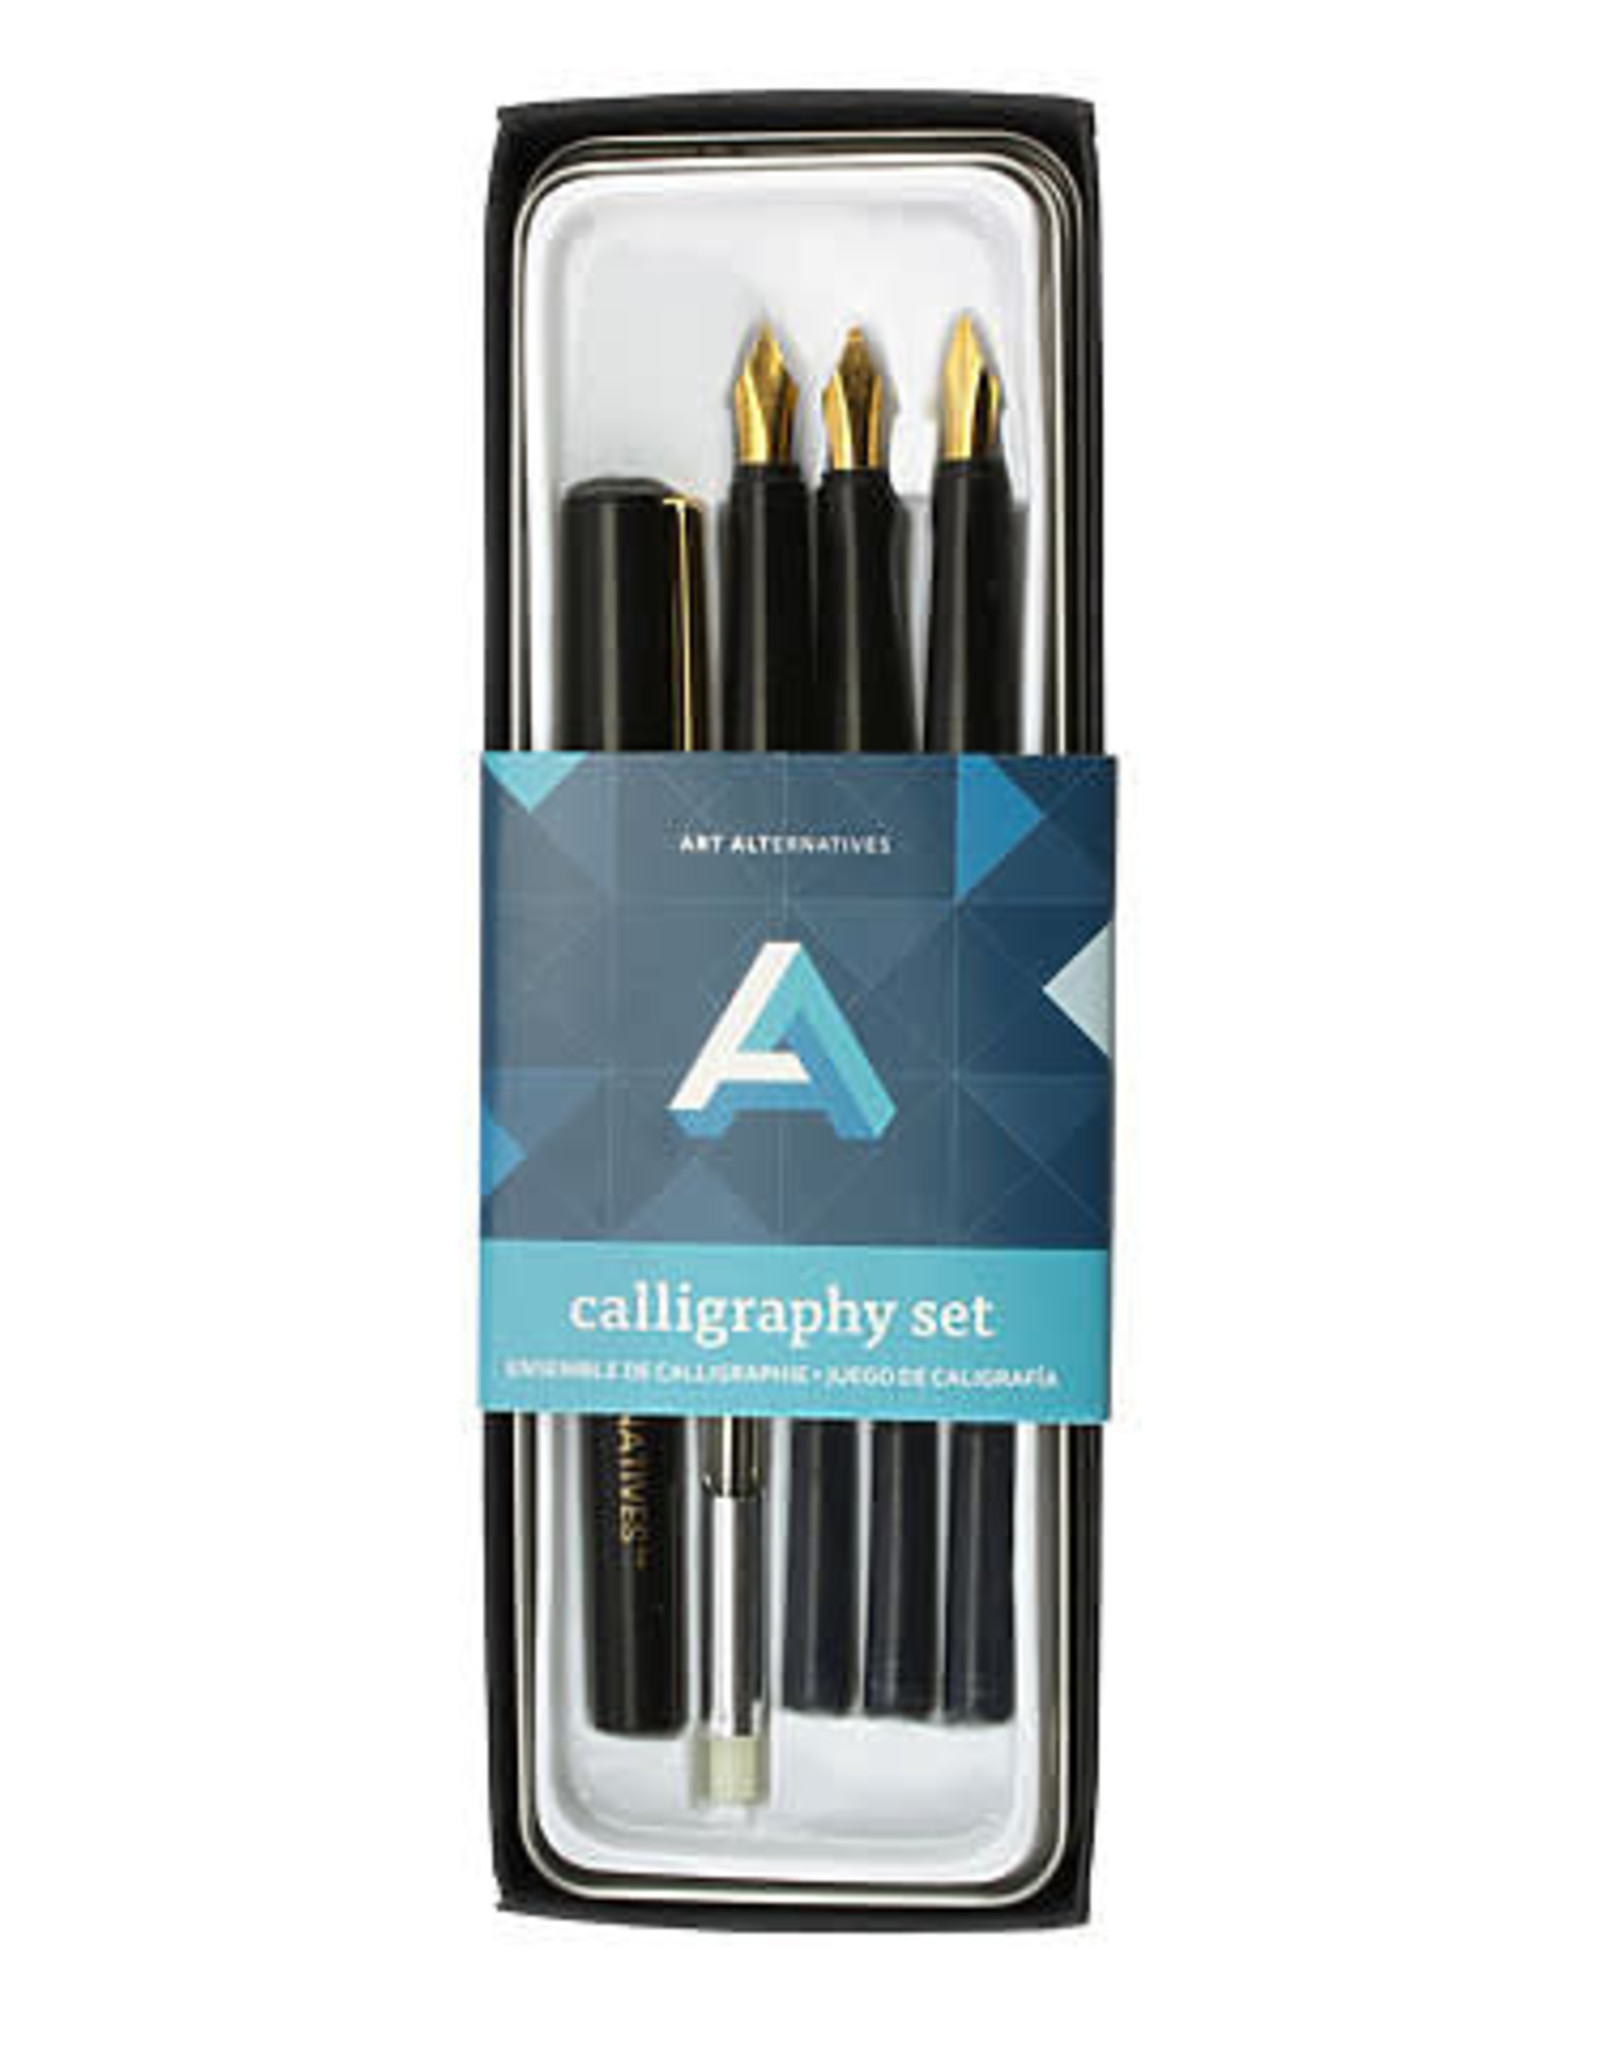 Art Alternatives Calligraphy Art Tin Set, Fountain Pen with 3 Nibs, Converter and Ink